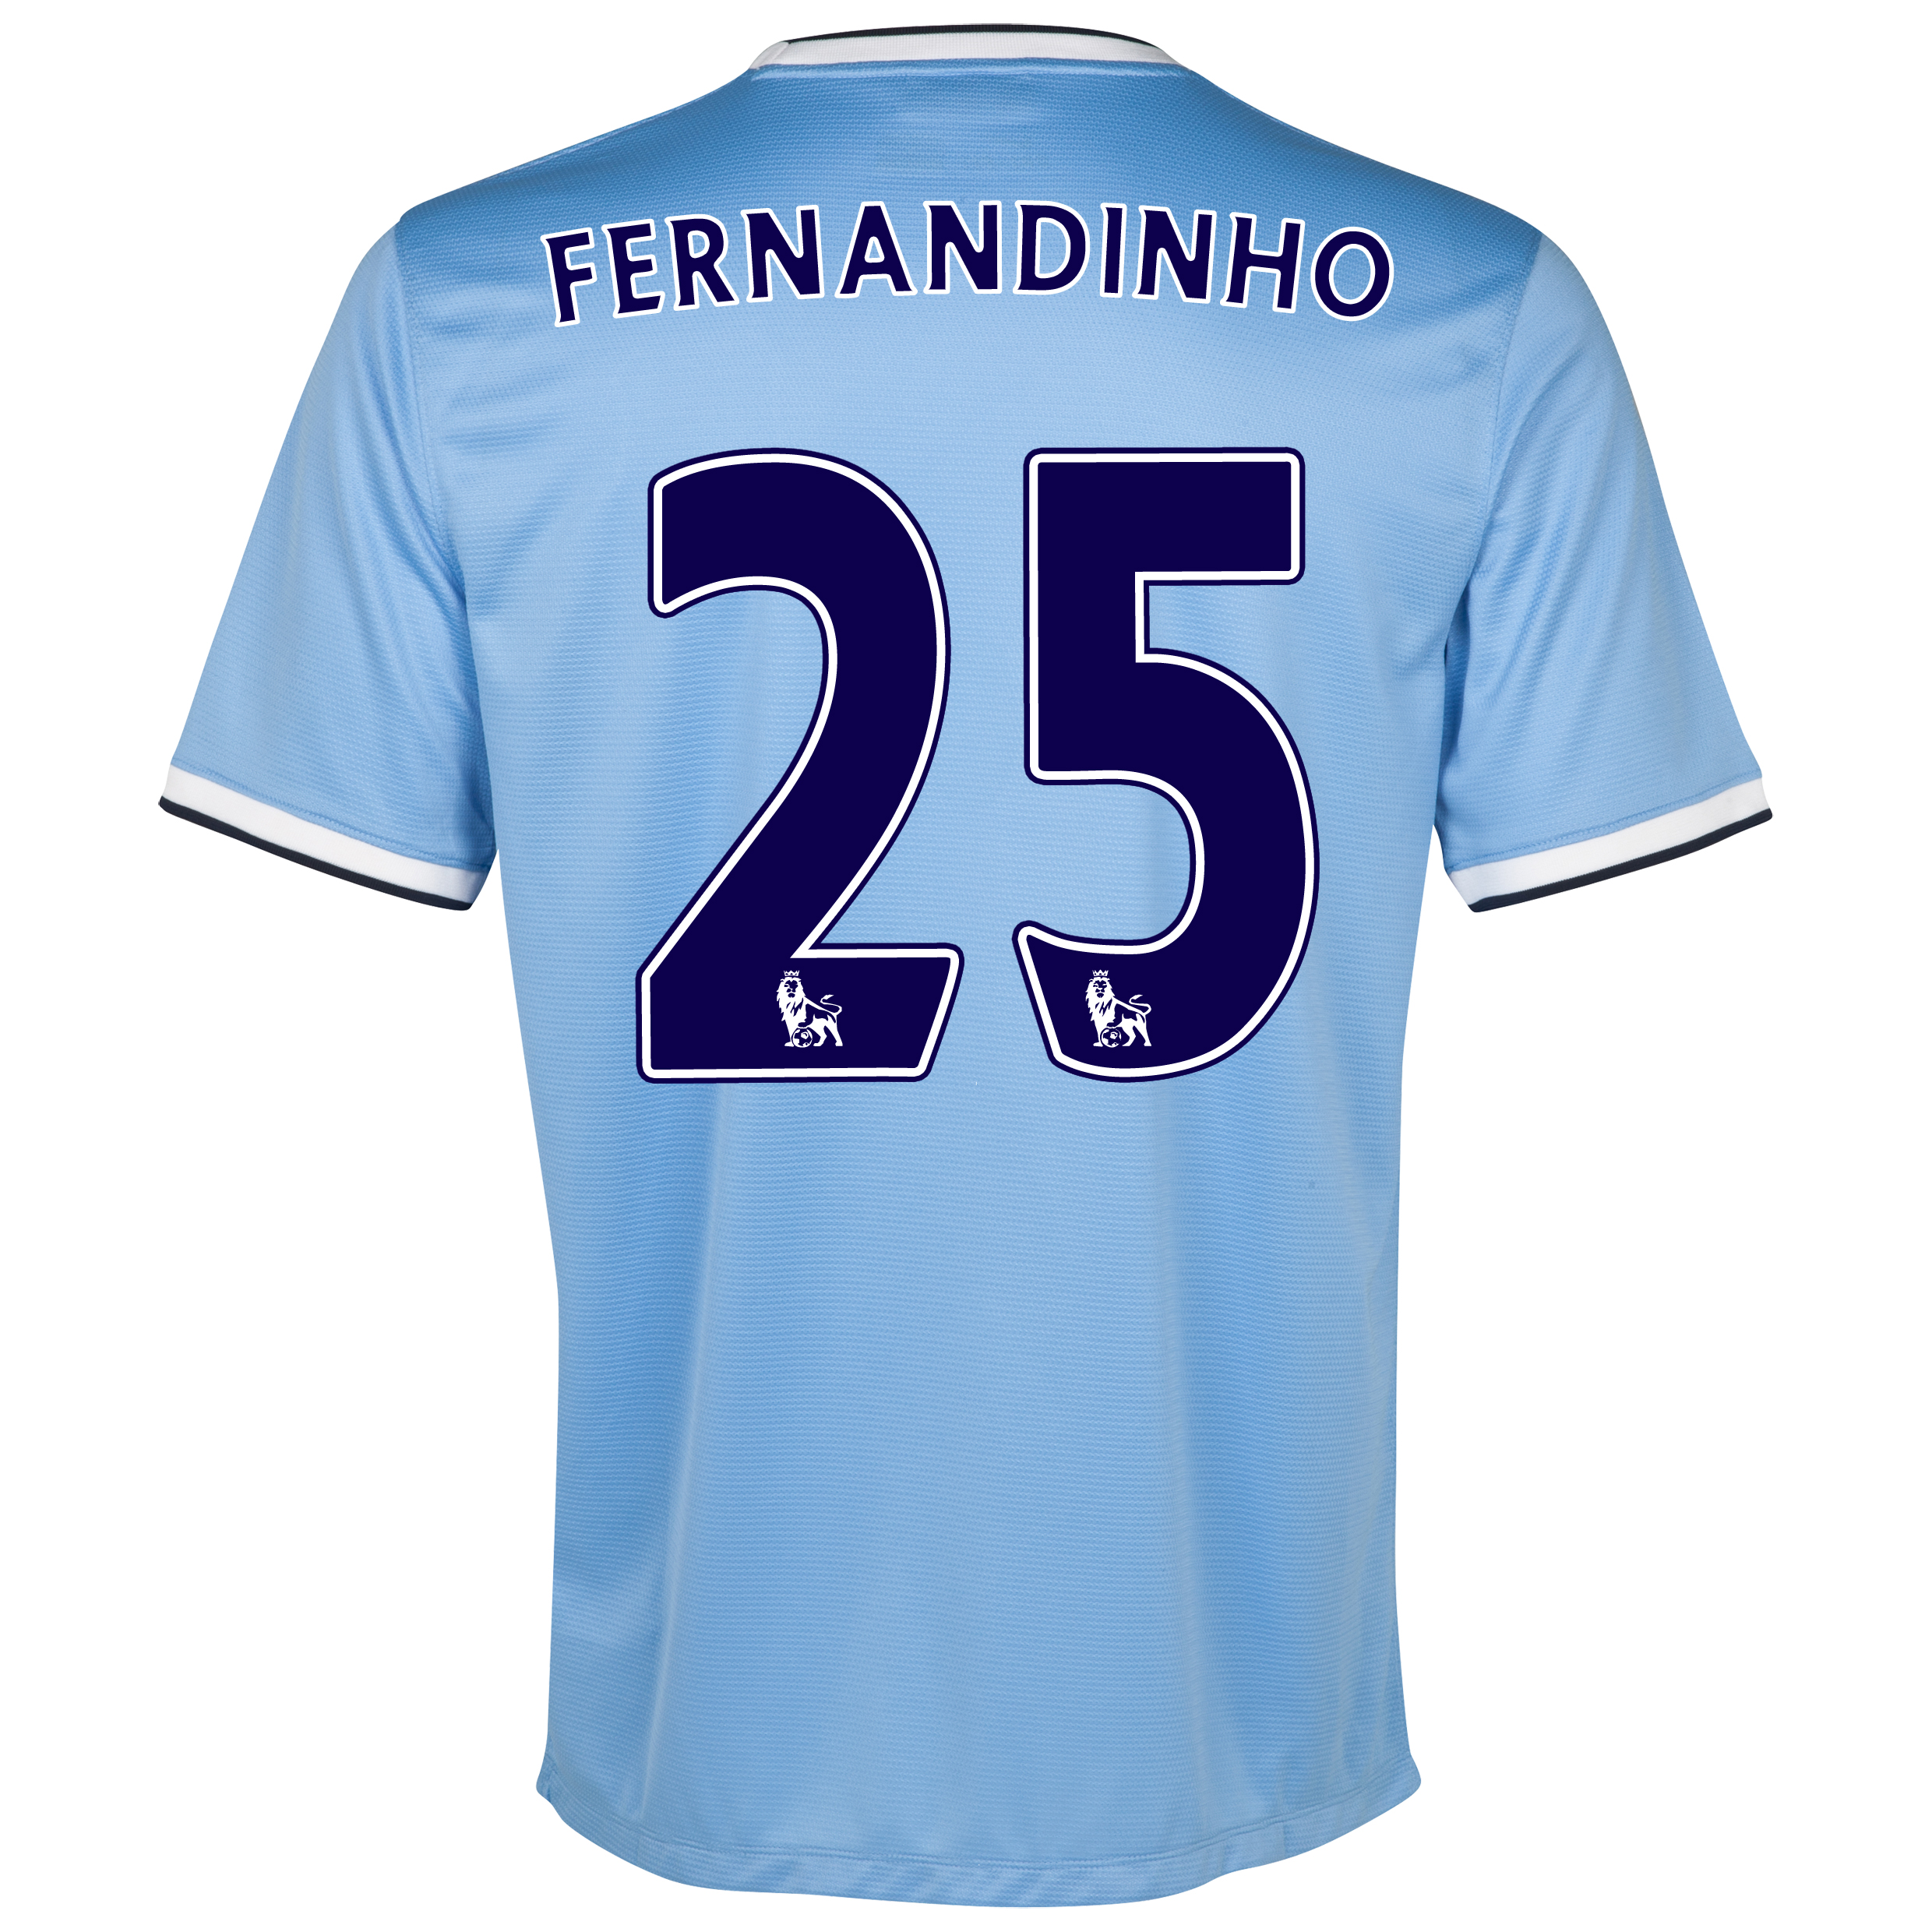 Manchester City Home Shirt 2013/14 with Fernandinho 25 printing